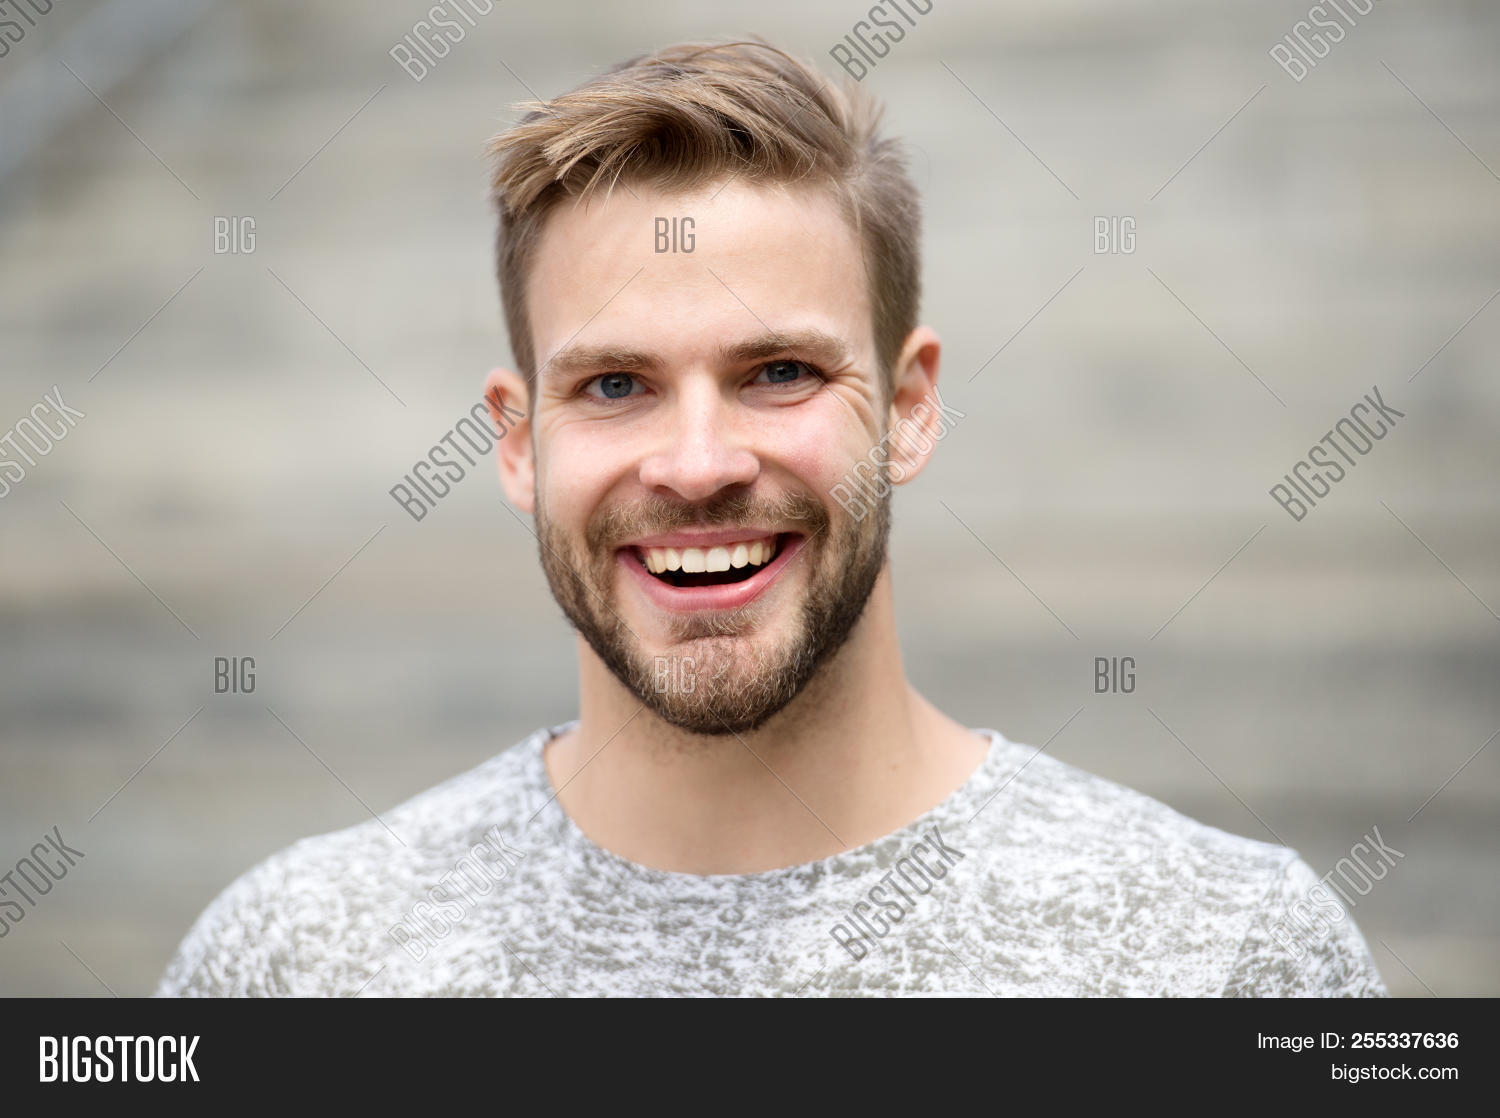 background,barber,beard,bearded,brilliant,care,casual,caucasian,charisma,concept,defocused,dental,dentistry,emotional,emotions,expression,face,fashion,fashionable,grooming,guy,hair,handsome,happy,healthy,implant,macho,man,medicine,mustache,outdoors,perfect,prosthesis,salon,shirt,skin,smile,stomatology,style,stylish,teeth,therapy,treatment,unshaven,white